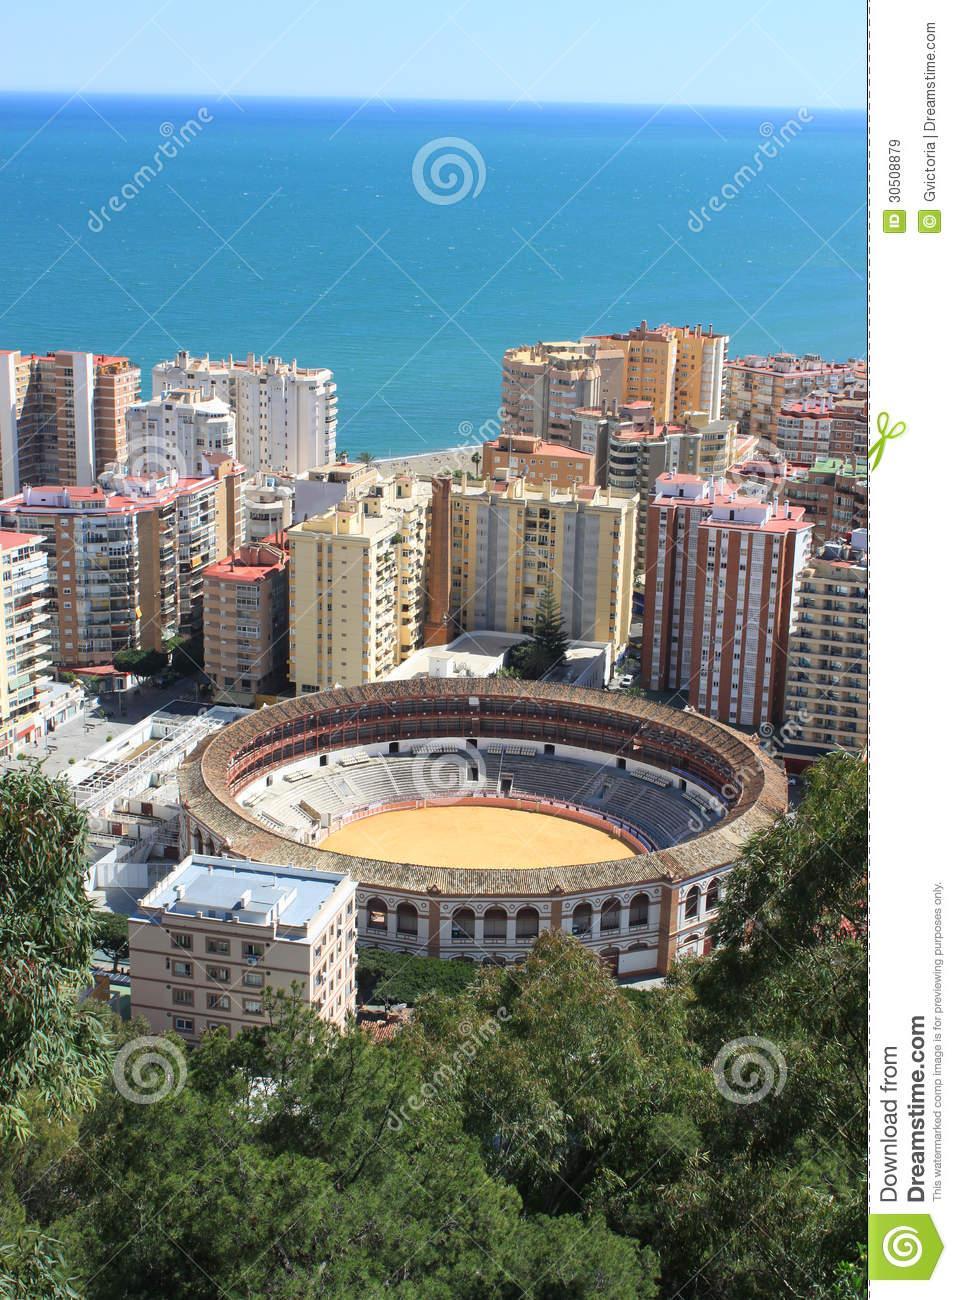 bullring in malaga spain stock image image of ring 30508879. Black Bedroom Furniture Sets. Home Design Ideas